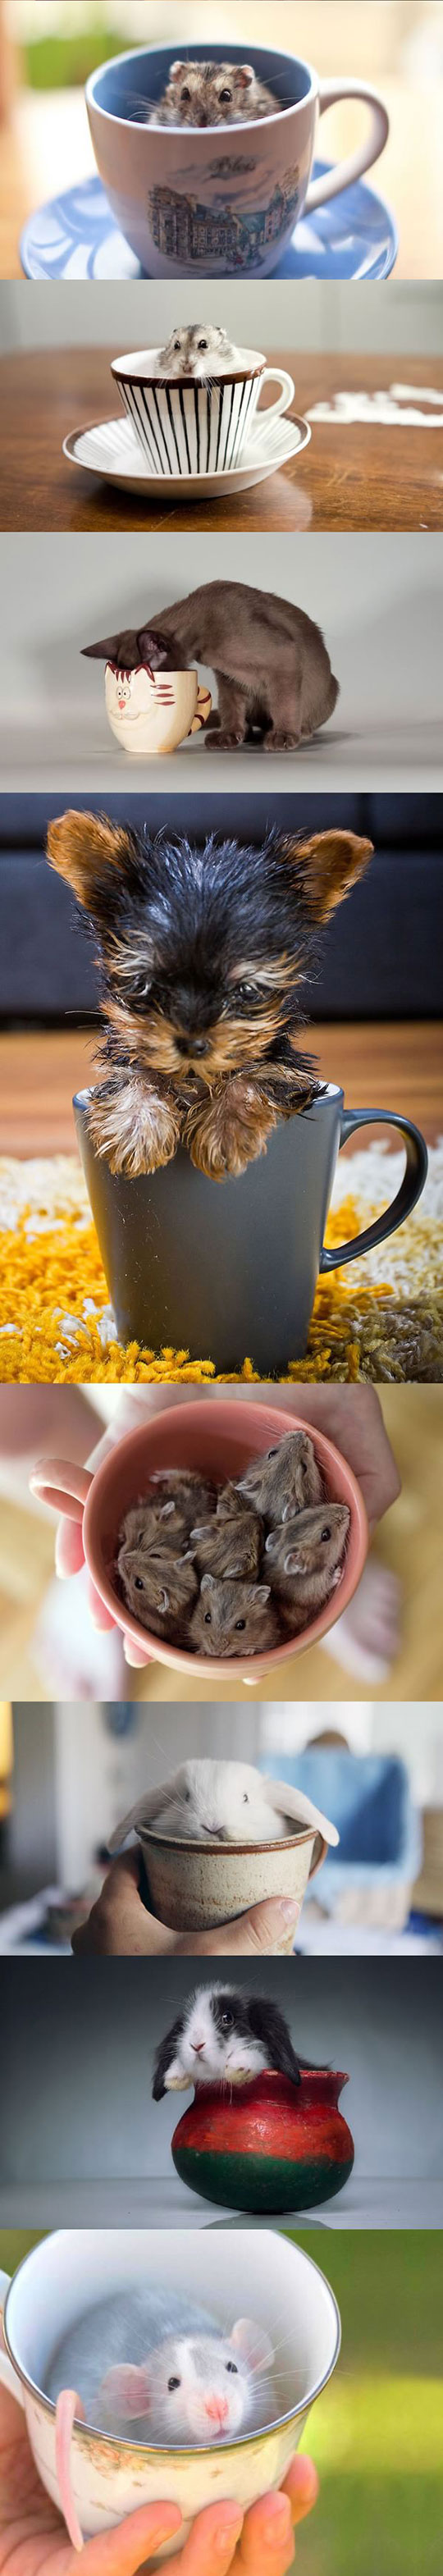 cute-pets-inside-cups-cat